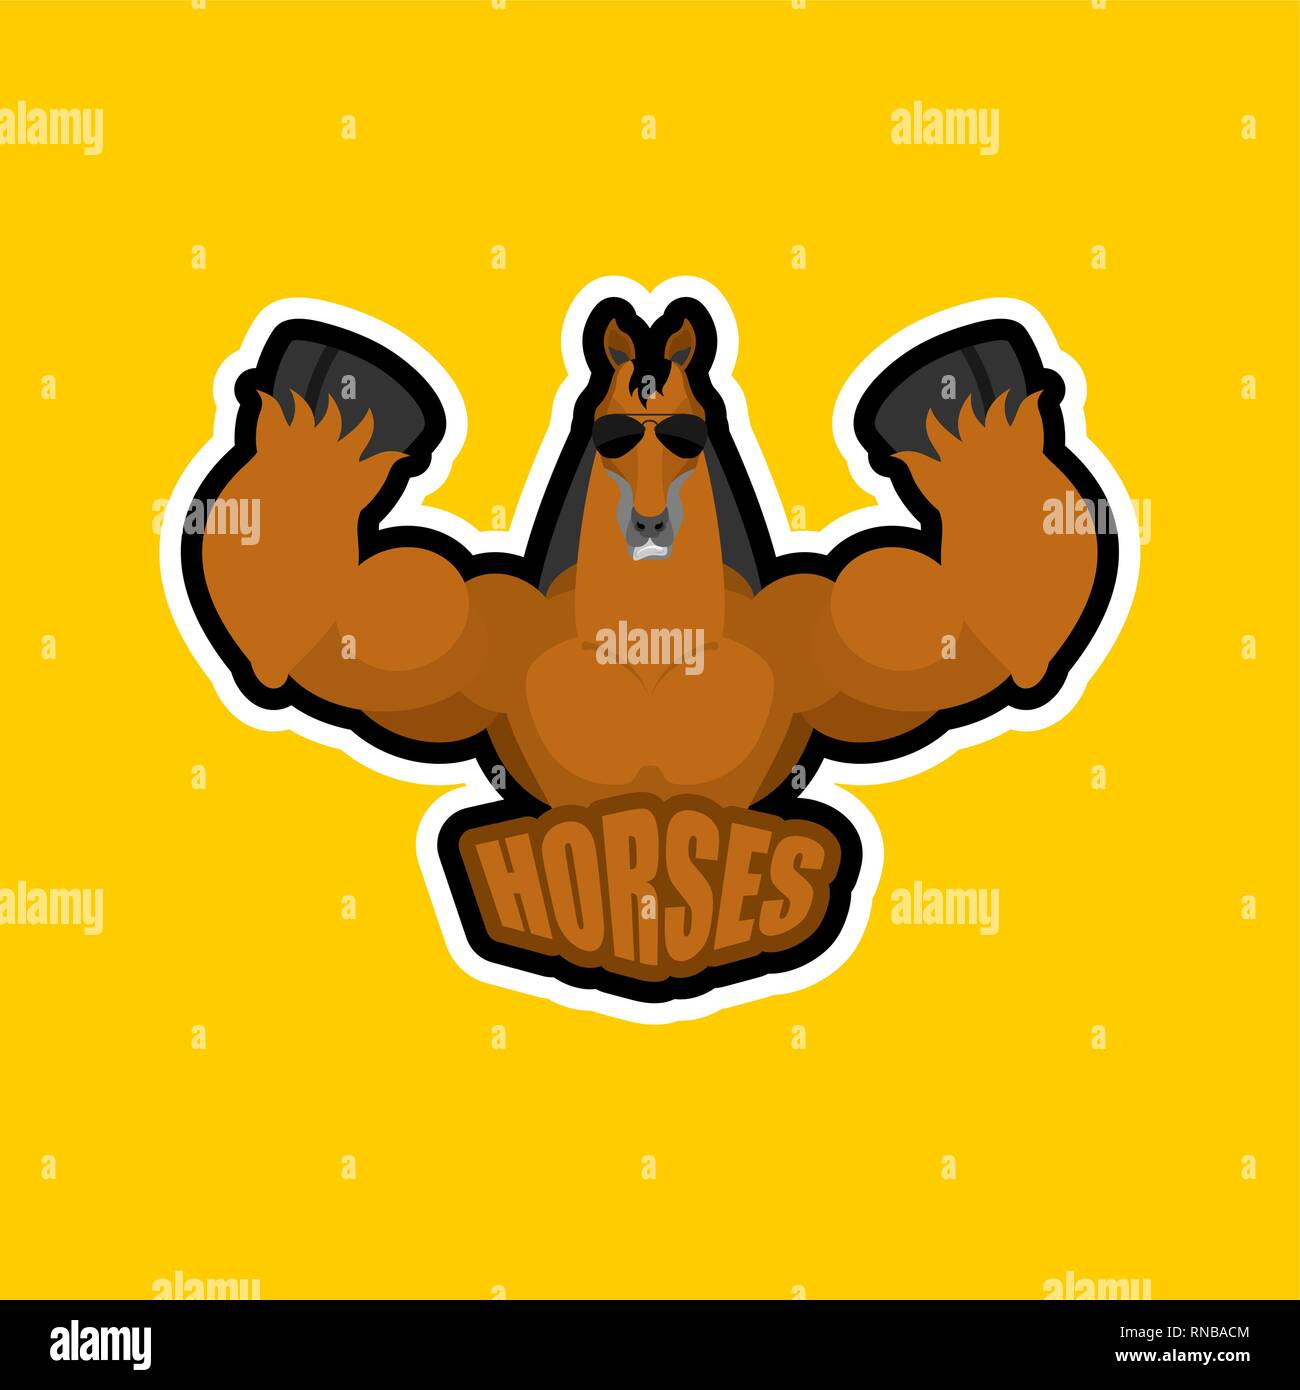 Horses Sport Logo Steed Sports Team Club Emblem Animal Mascot Gaming Sign Strong Horse Beast Symbol Stock Vector Image Art Alamy